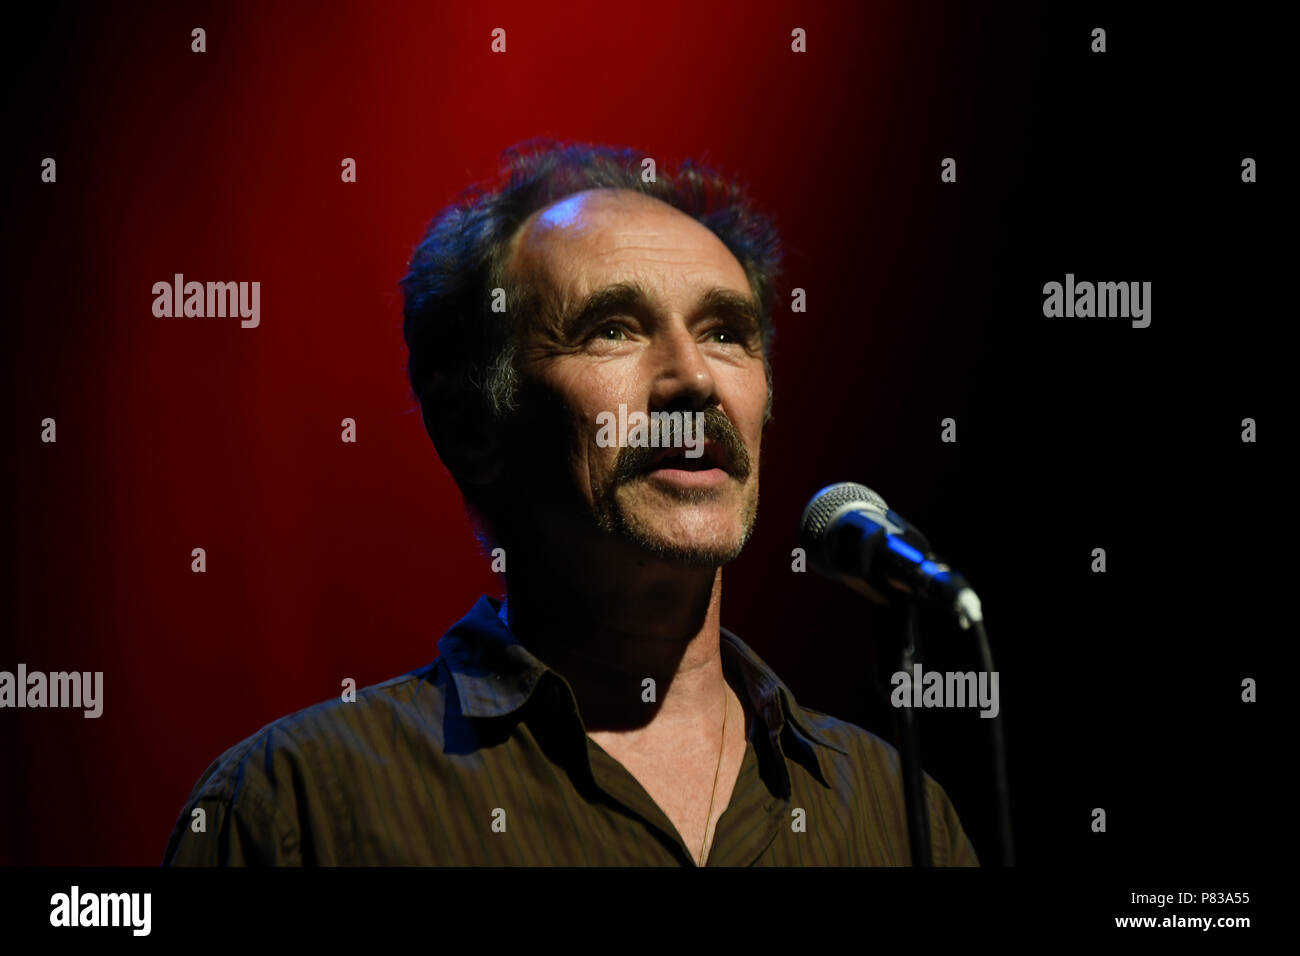 London, UK. 8th July 2018. Mark Rylance is an actor preforms at the Just Say No - Artists Against Trump & War host by Stop the War Coalition, Trump is not welcome in the UK at The Shaw Theatre on 8th July 2018. Credit: Picture Capital/Alamy Live News - Stock Image